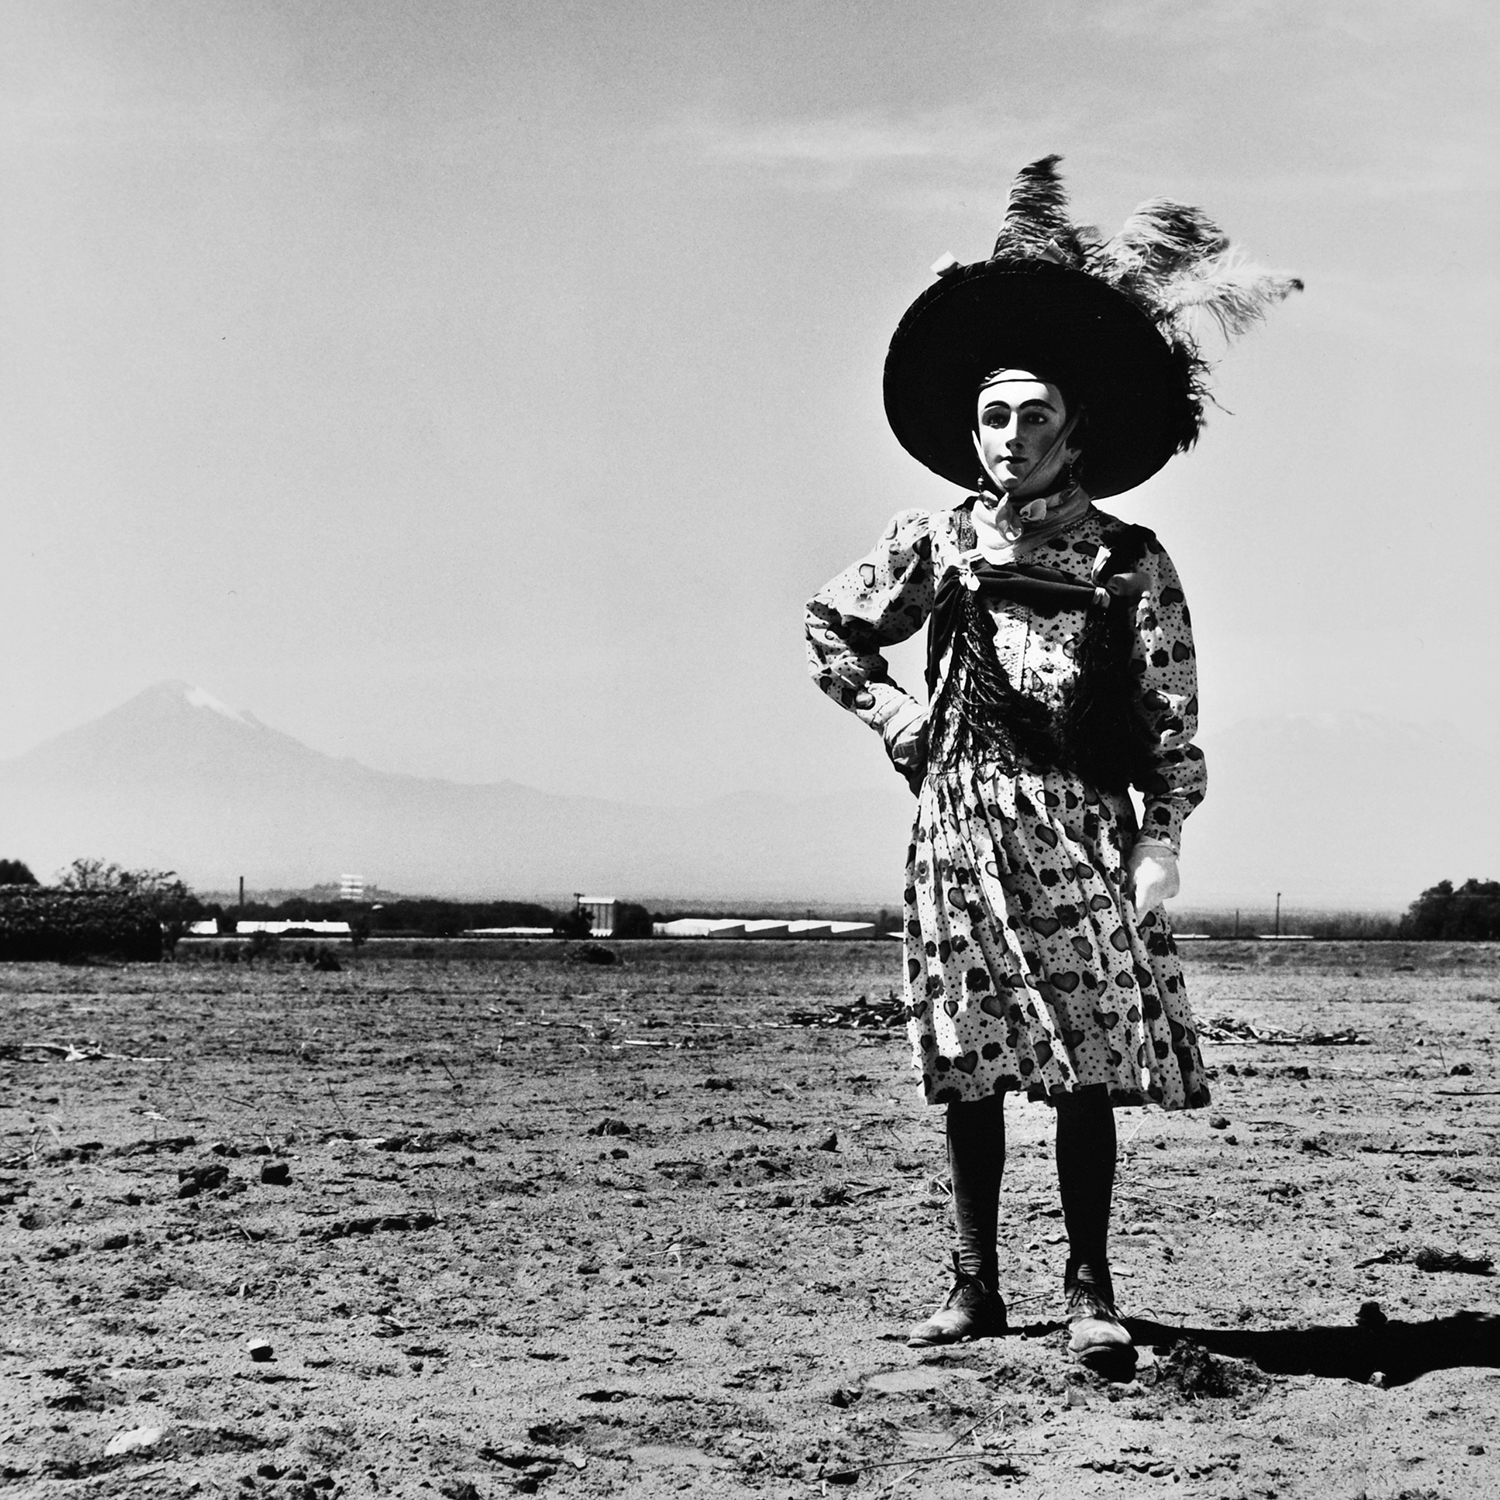 Graciela Iturbide,Carnaval, Tlaxcala, Mexico, 1974 © the artist and courtesy ROSEGALLERY